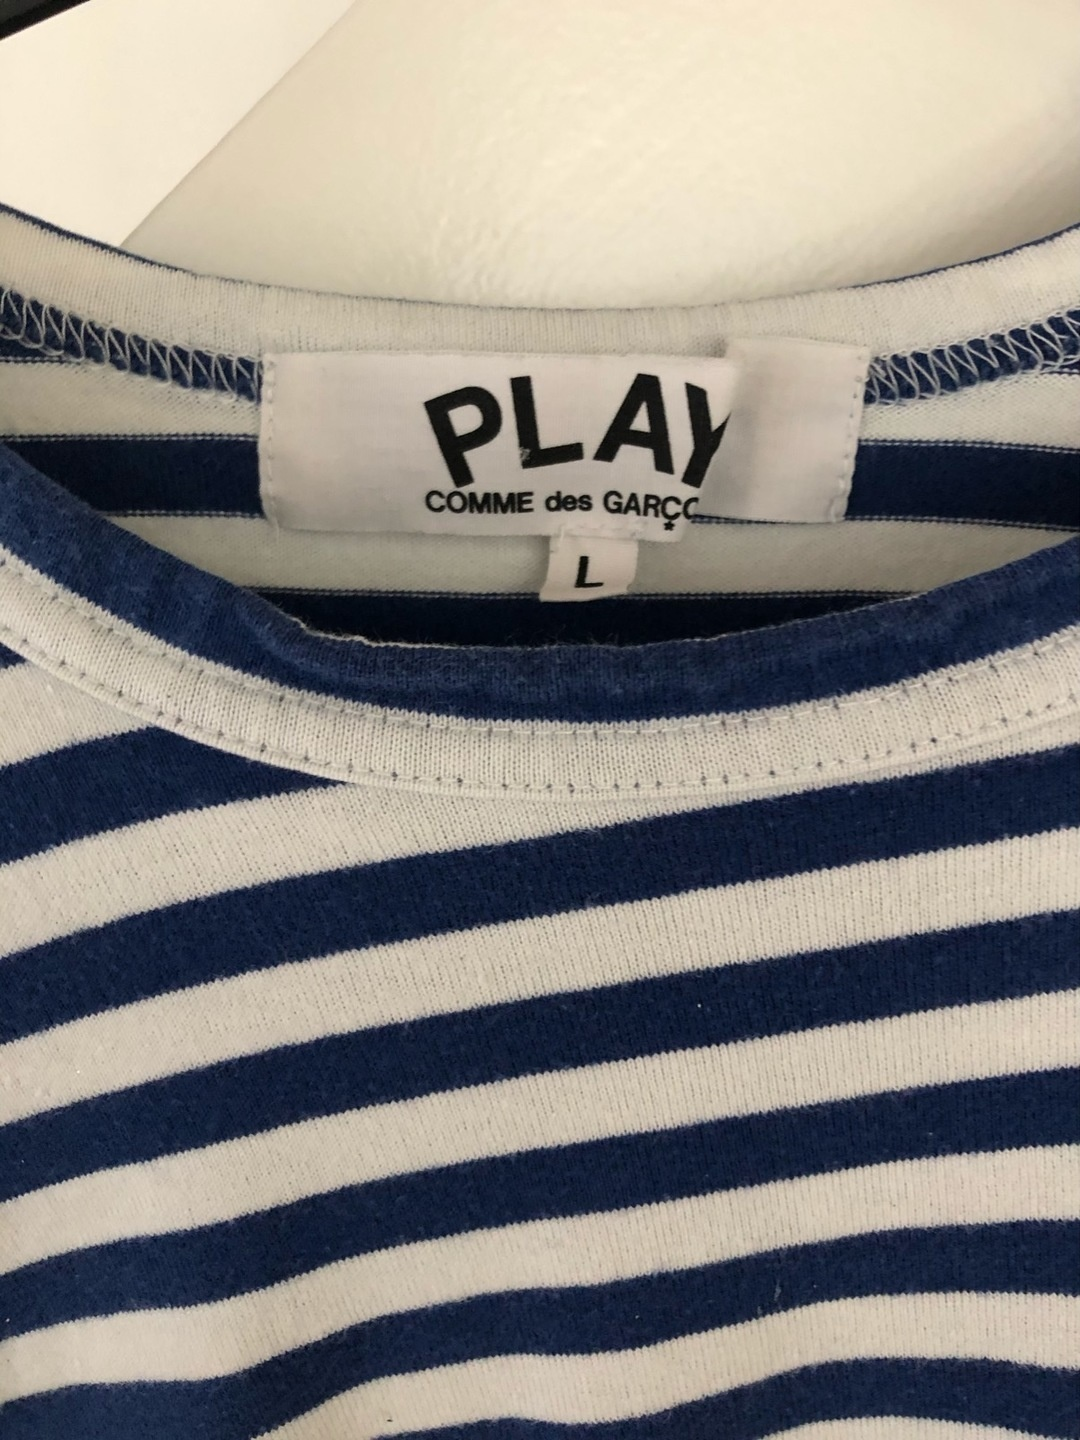 Damers toppe og t-shirts - COMME DES GARCONS PLAY photo 3